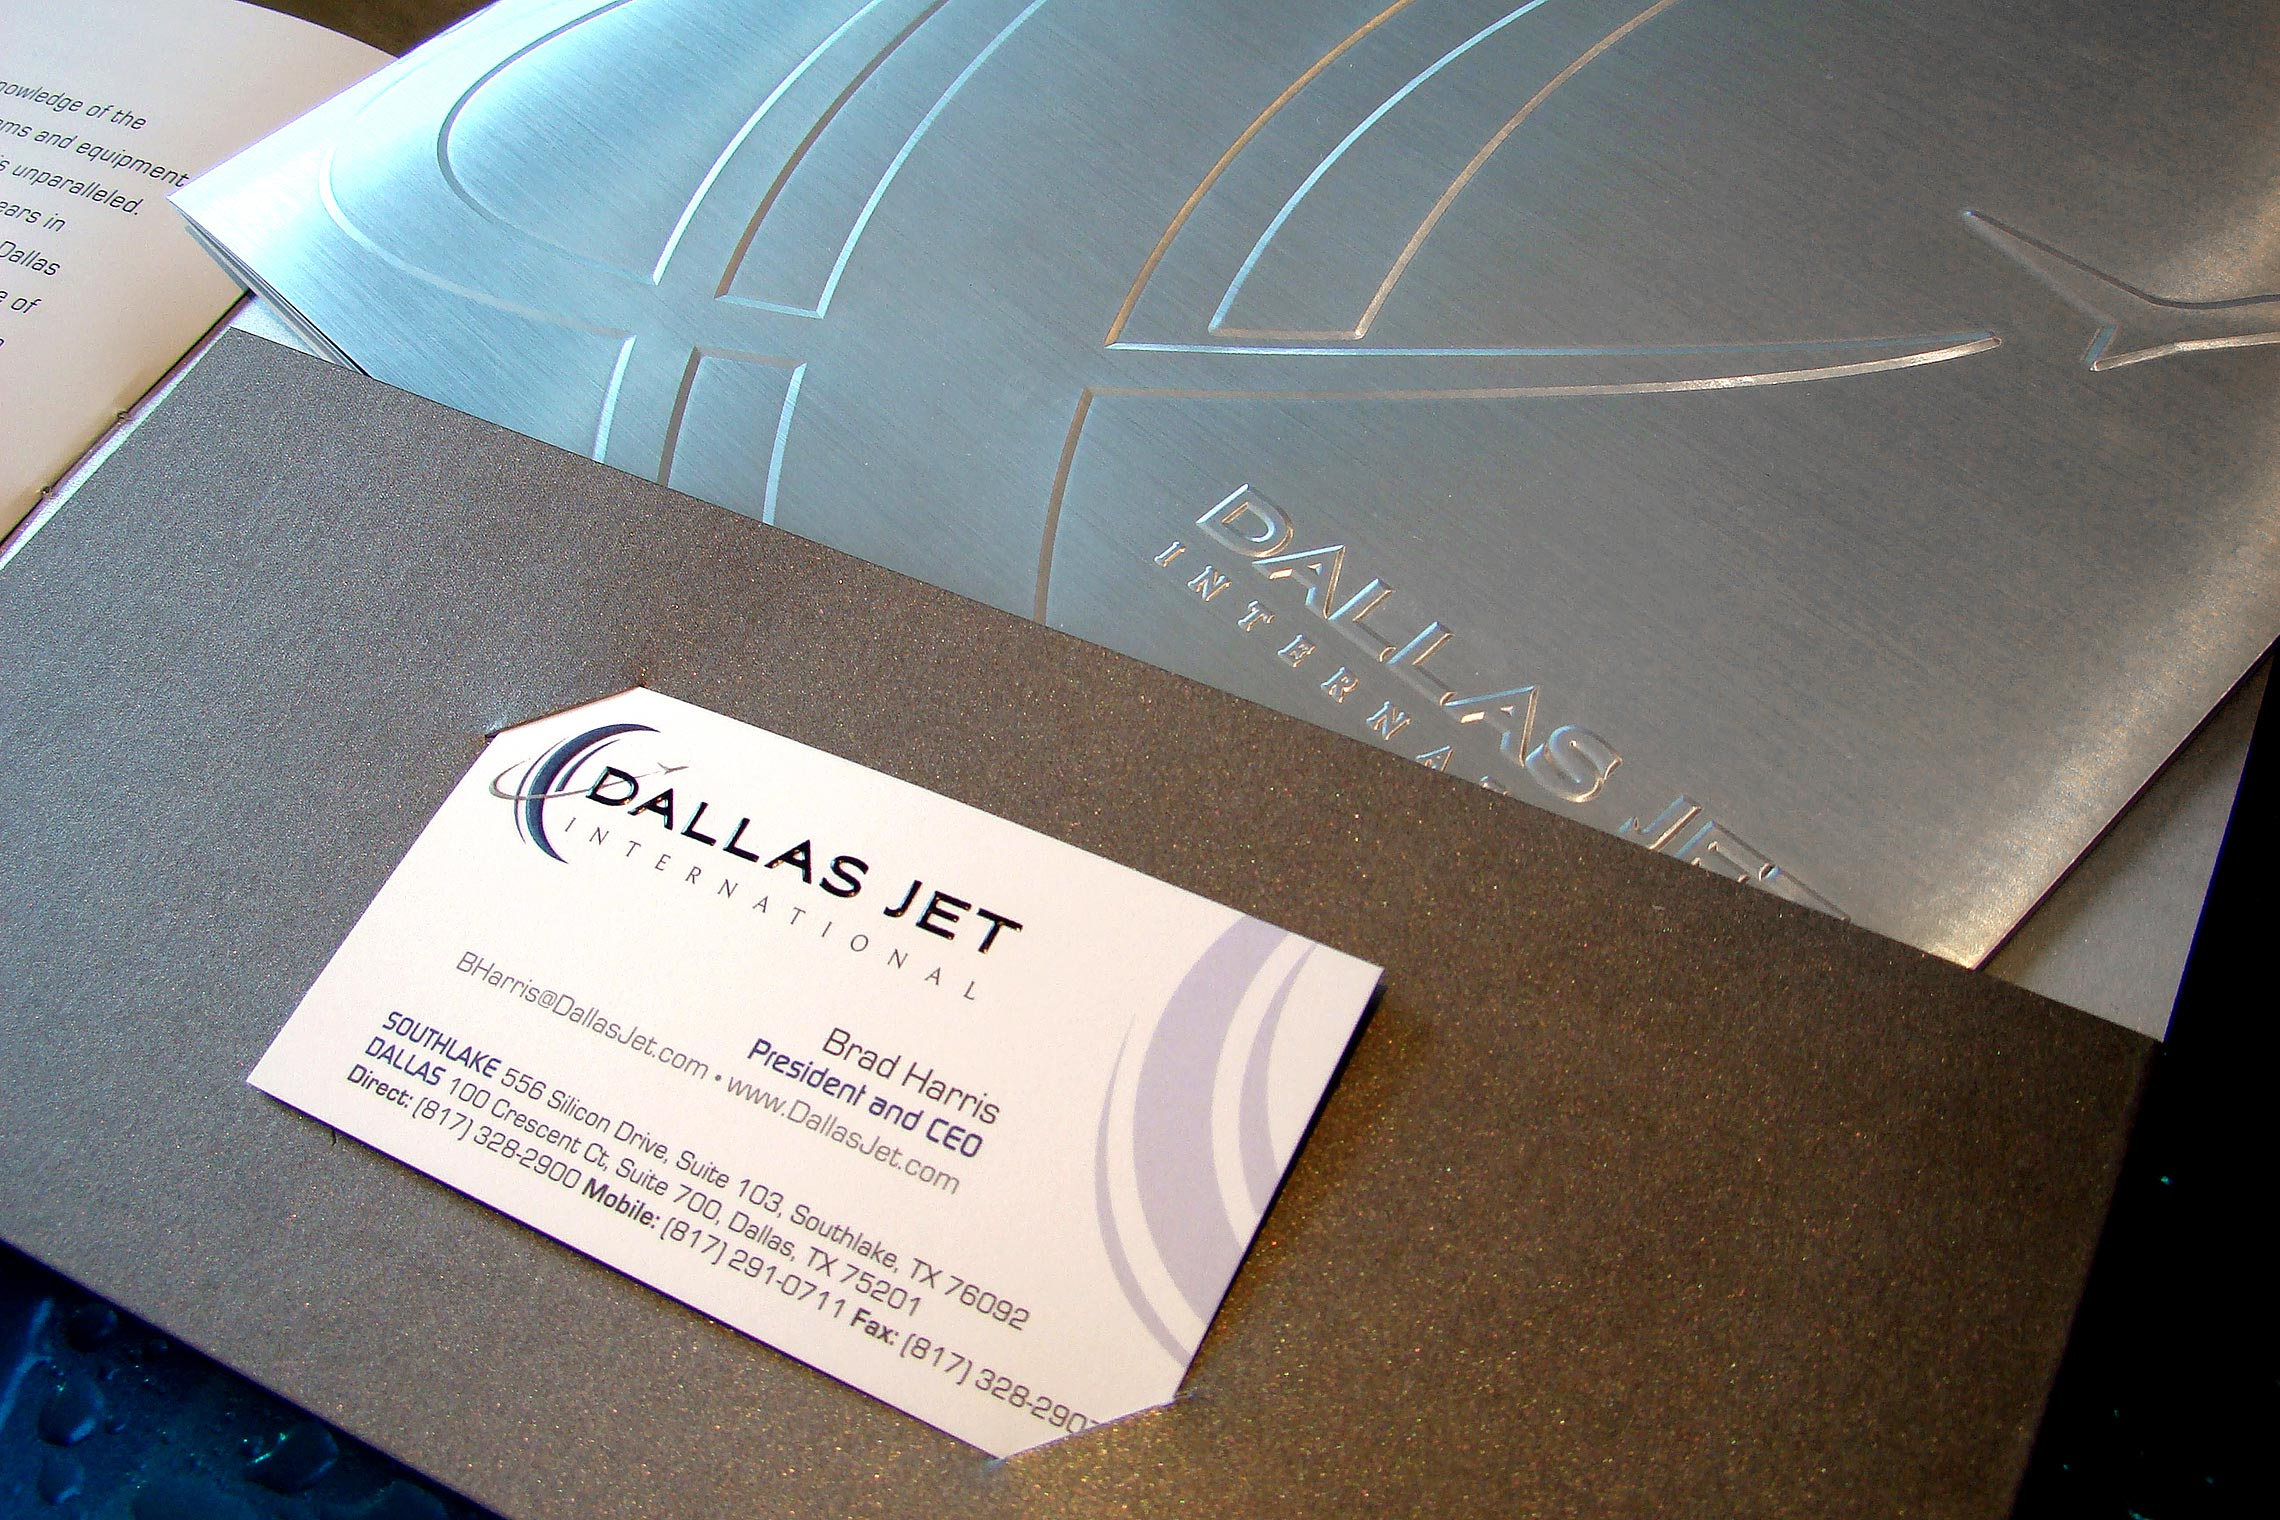 Dallas Jet International Custom Collateral - Brochure Pocket Detail with Business Card Slit